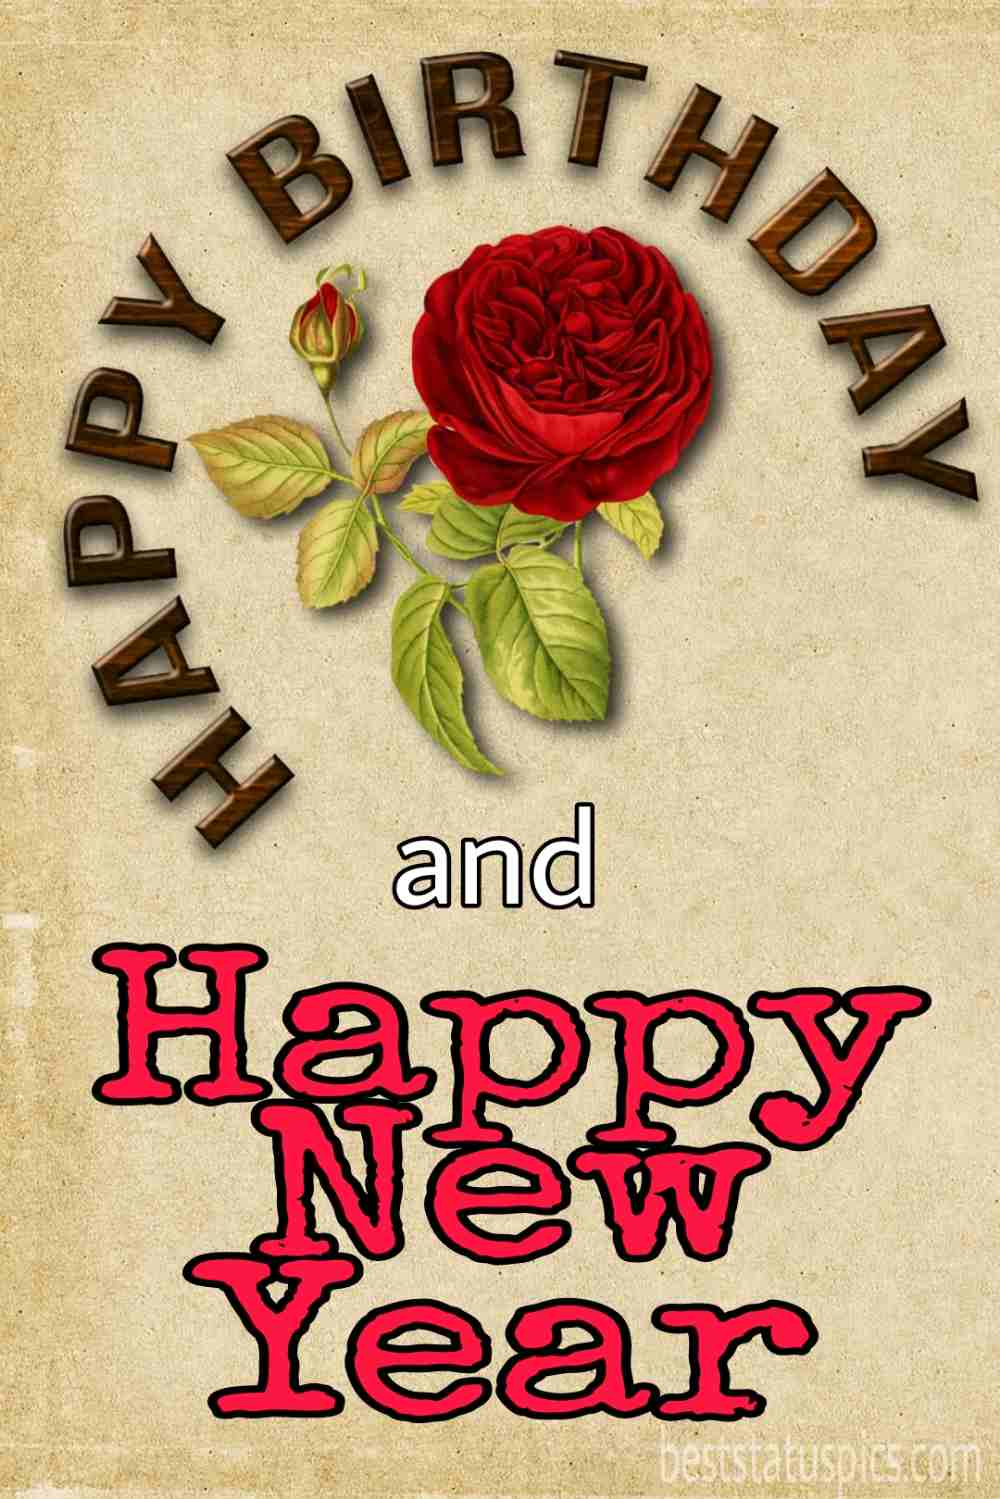 Happy new year 2022 and Happy Birthday wishes photo with rose for girlfriend, boyfriend, husband, wife and lover